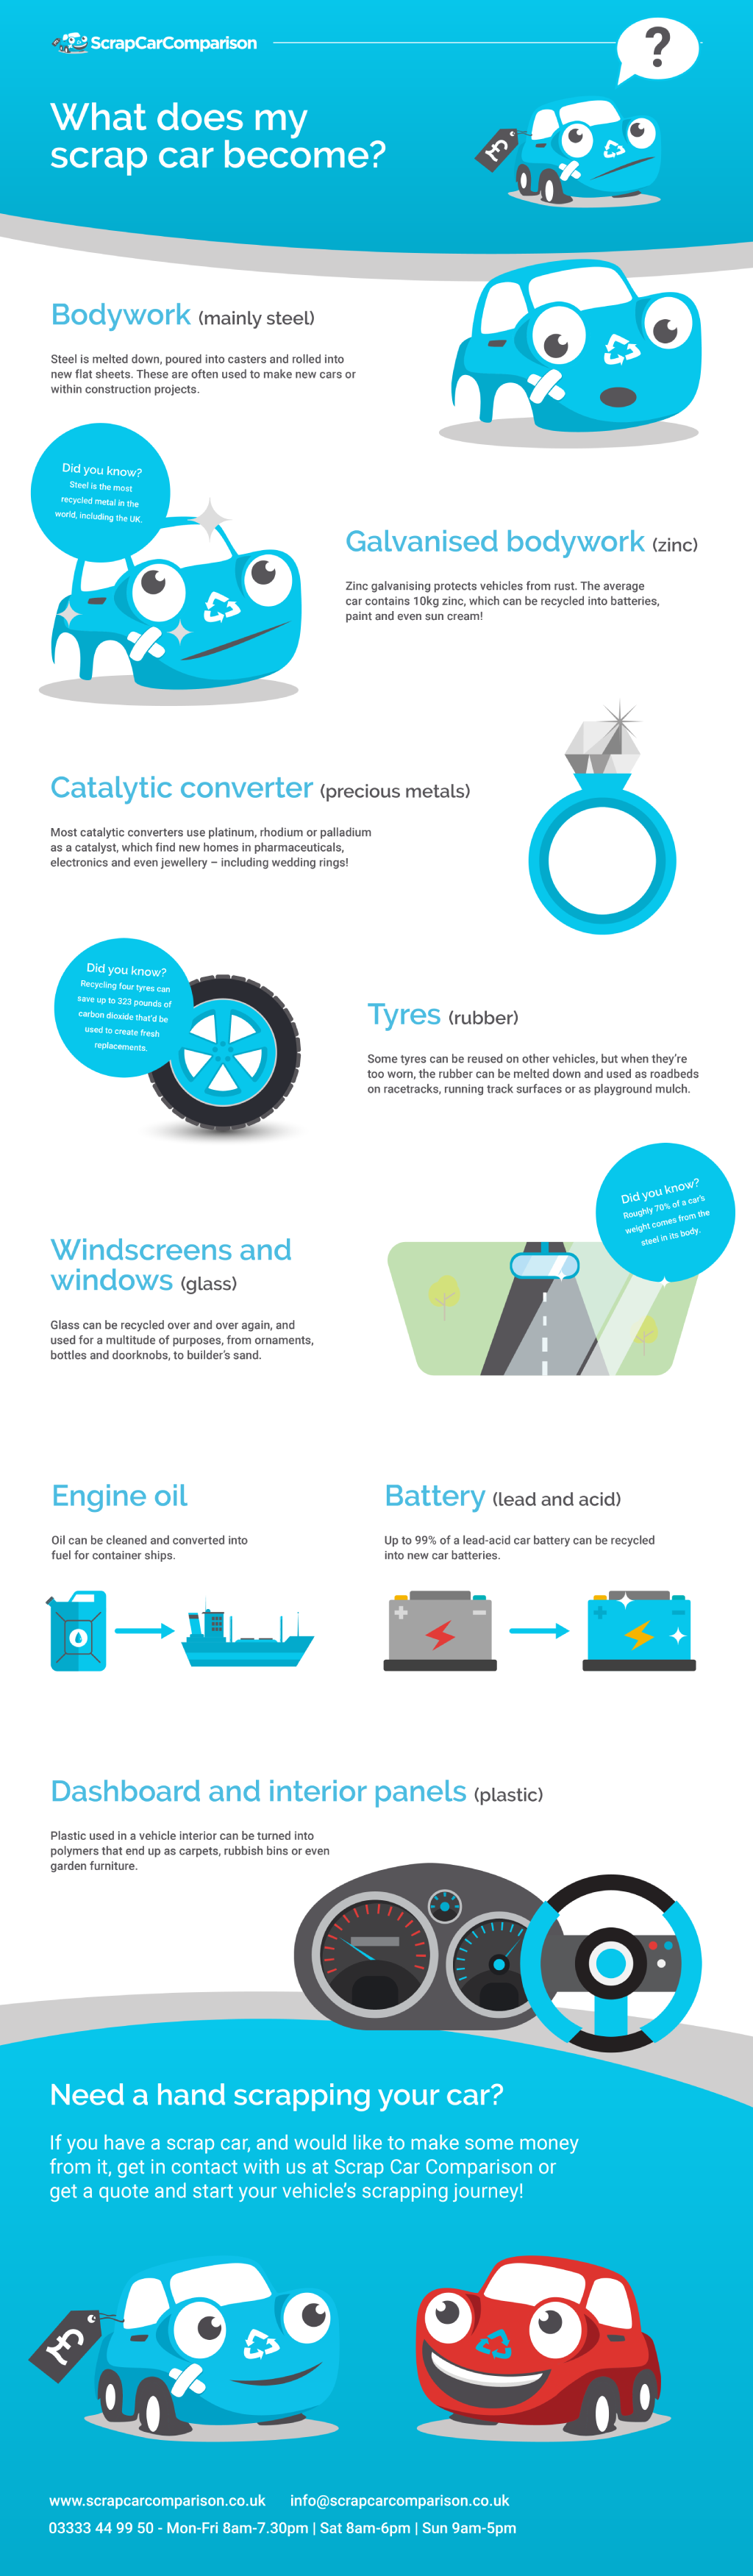 What does my scrap car become infographic